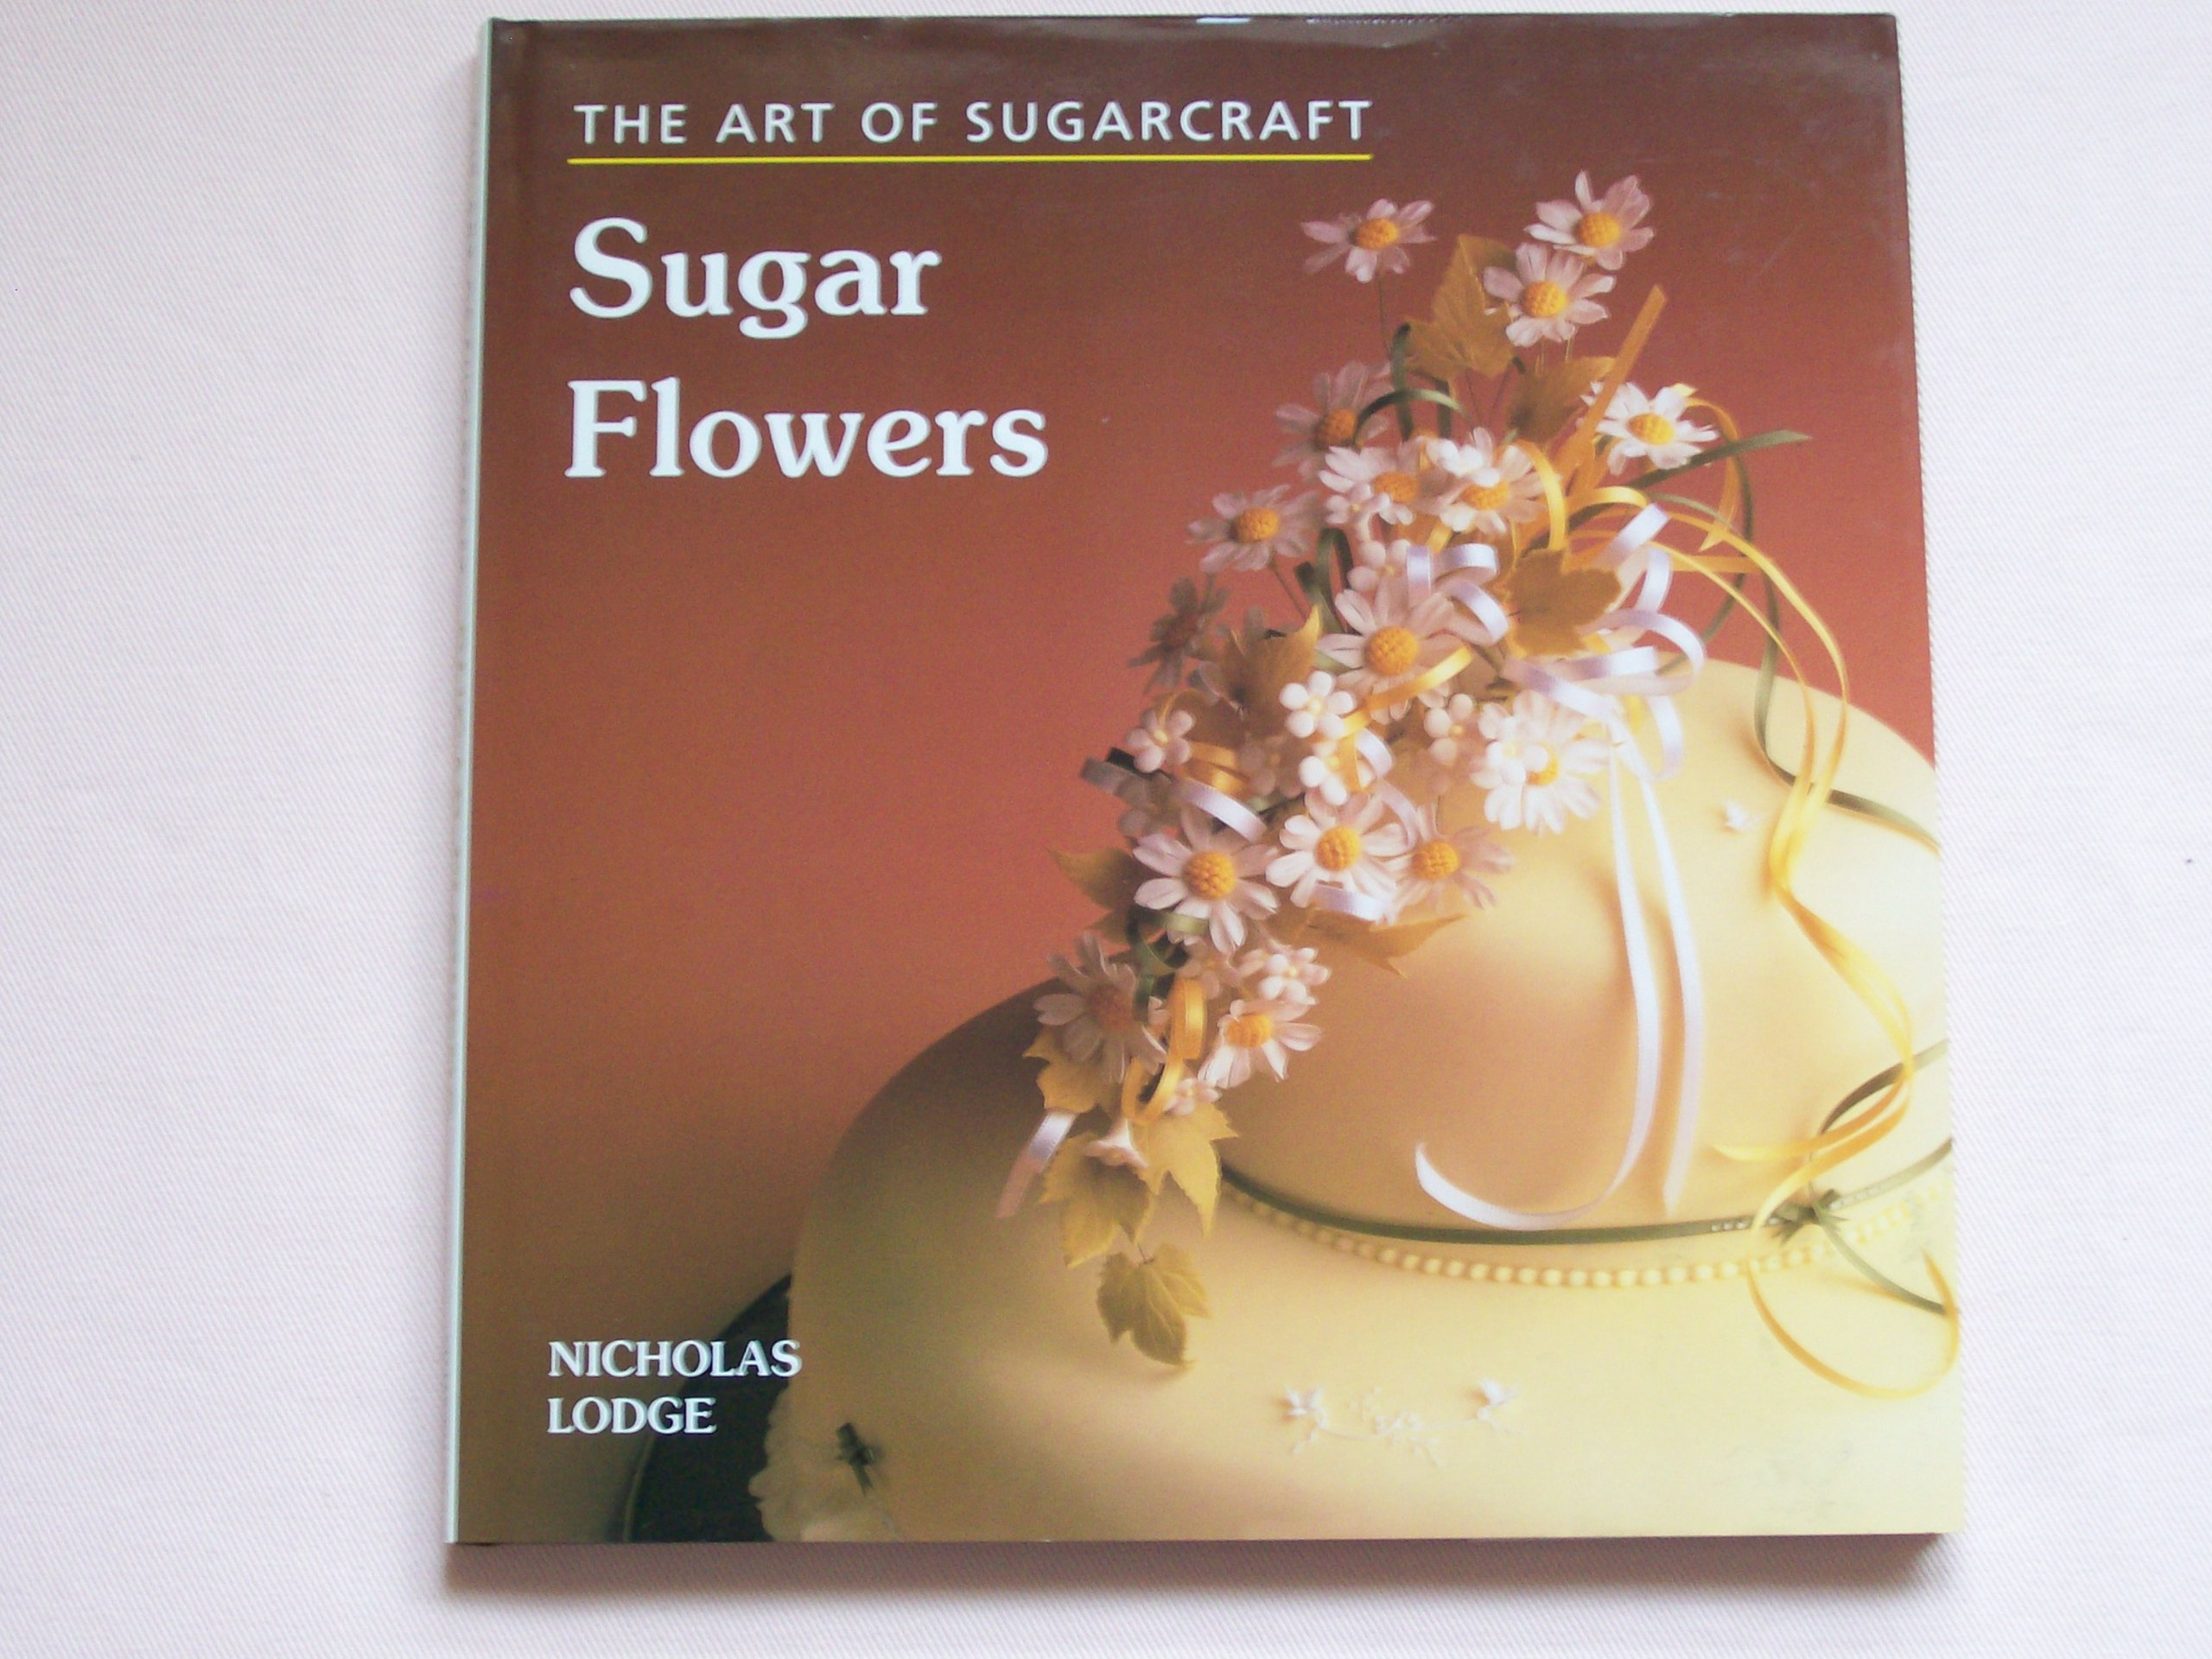 Sugar flowers the art of sugarcraft nicholas lodge 9781851529643 sugar flowers the art of sugarcraft nicholas lodge 9781851529643 amazon books izmirmasajfo